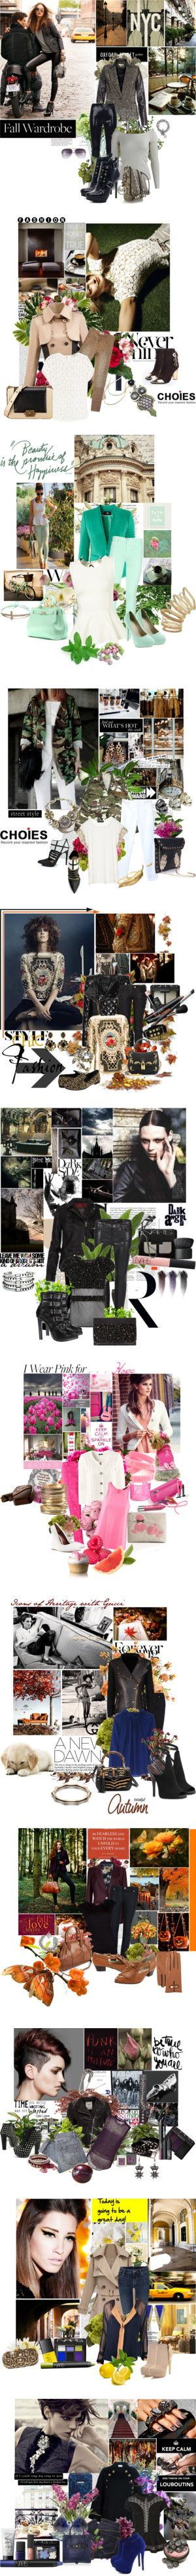 """""""Get the look."""" by laonela ❤ liked on Polyvore"""